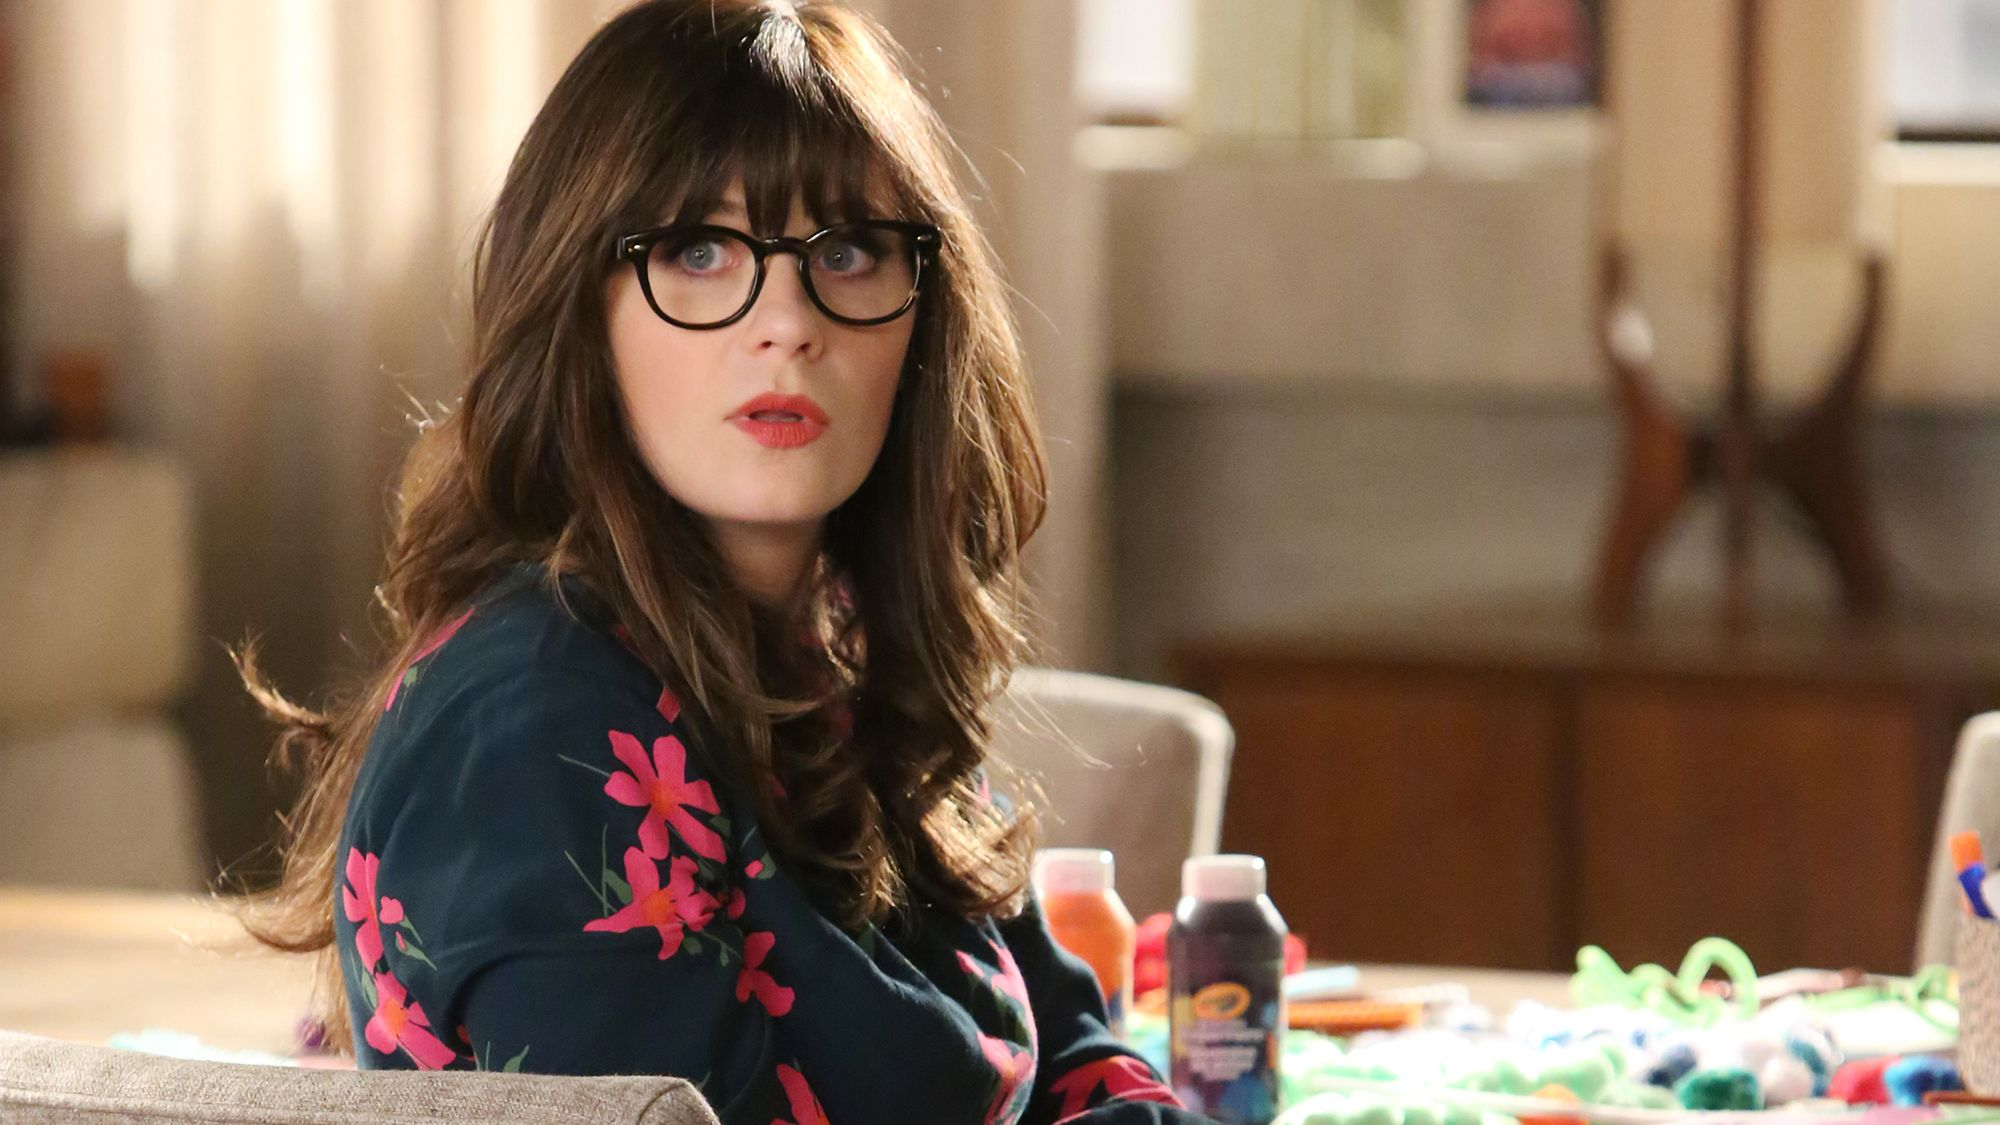 Forget about being called four eyes! There are things far worse about wearing glasses than being called silly names. (Photo: Release)